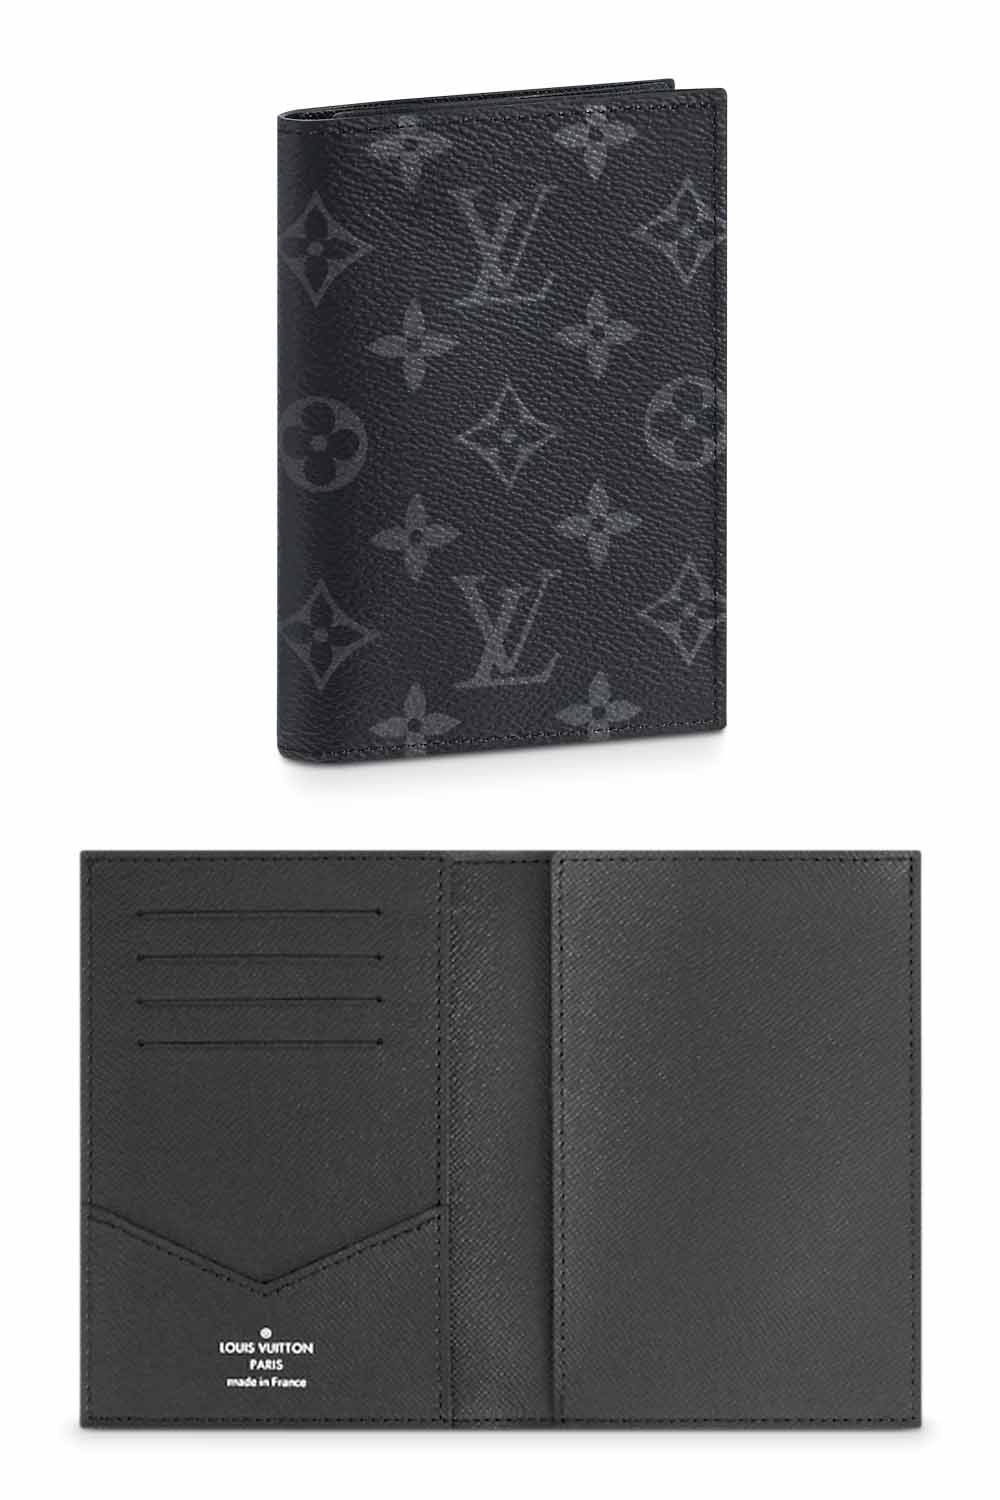 The-best-luxury-gifts-for-her-men-Louis-Vuitton-eclipse-monogram-passport-cover